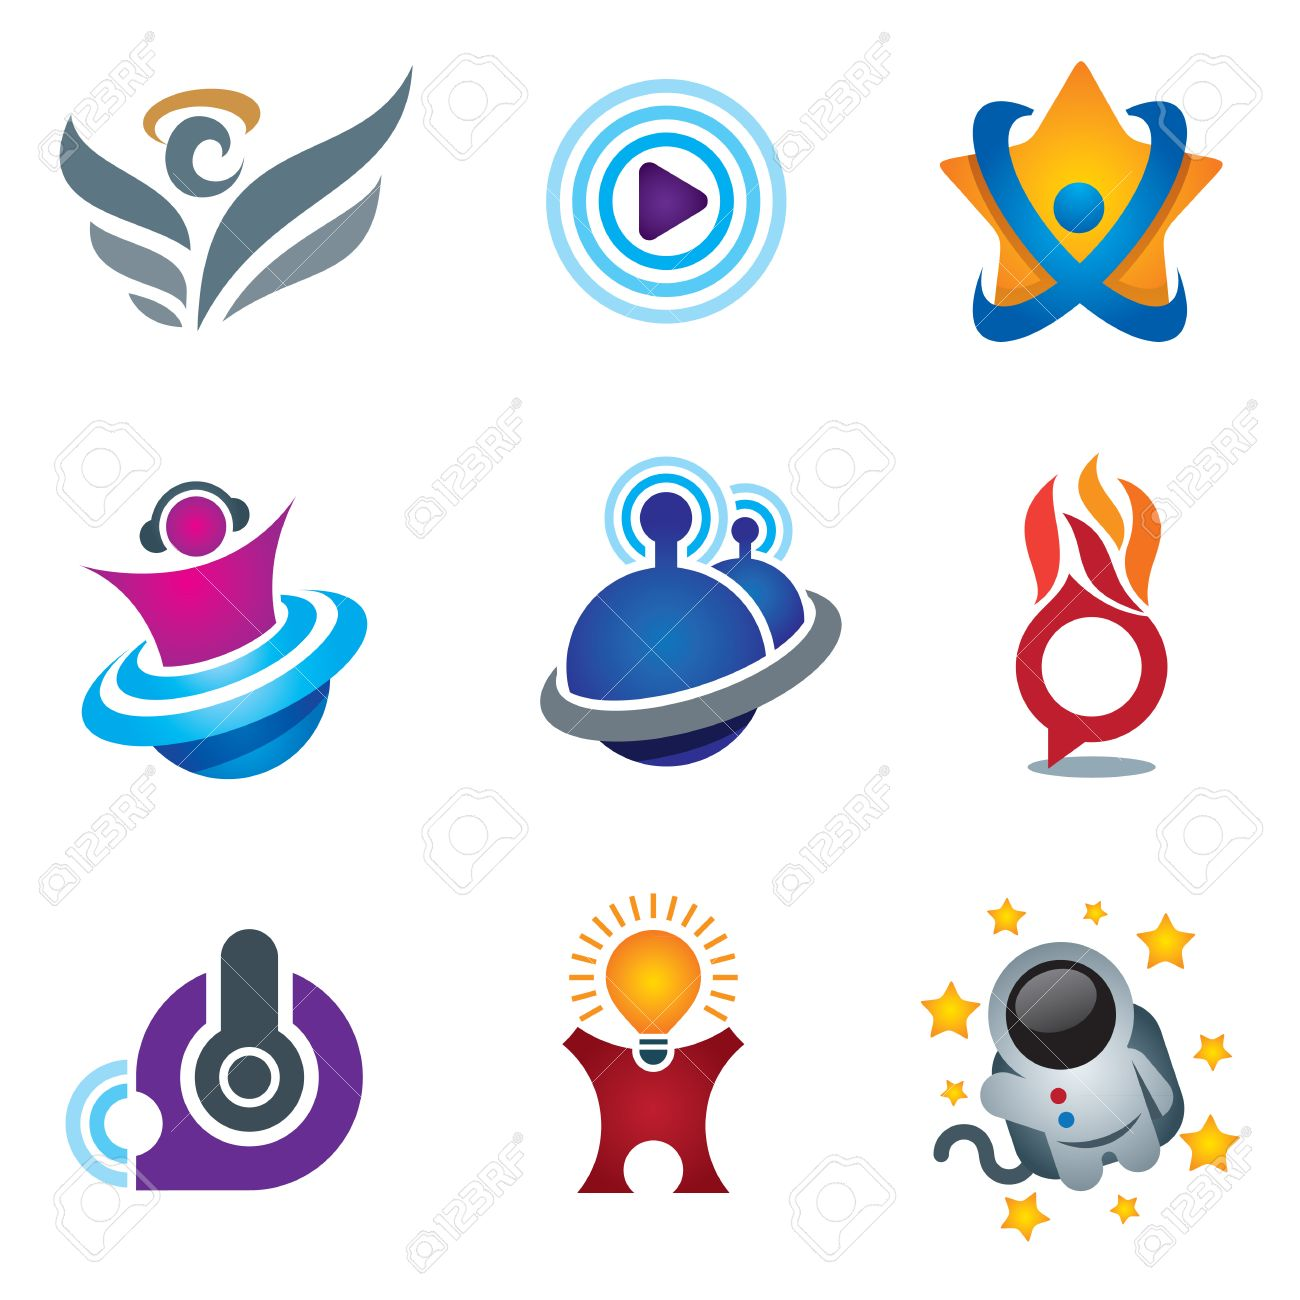 Entertainment and fun symbol of exploring happiness Stock Vector - 23869409